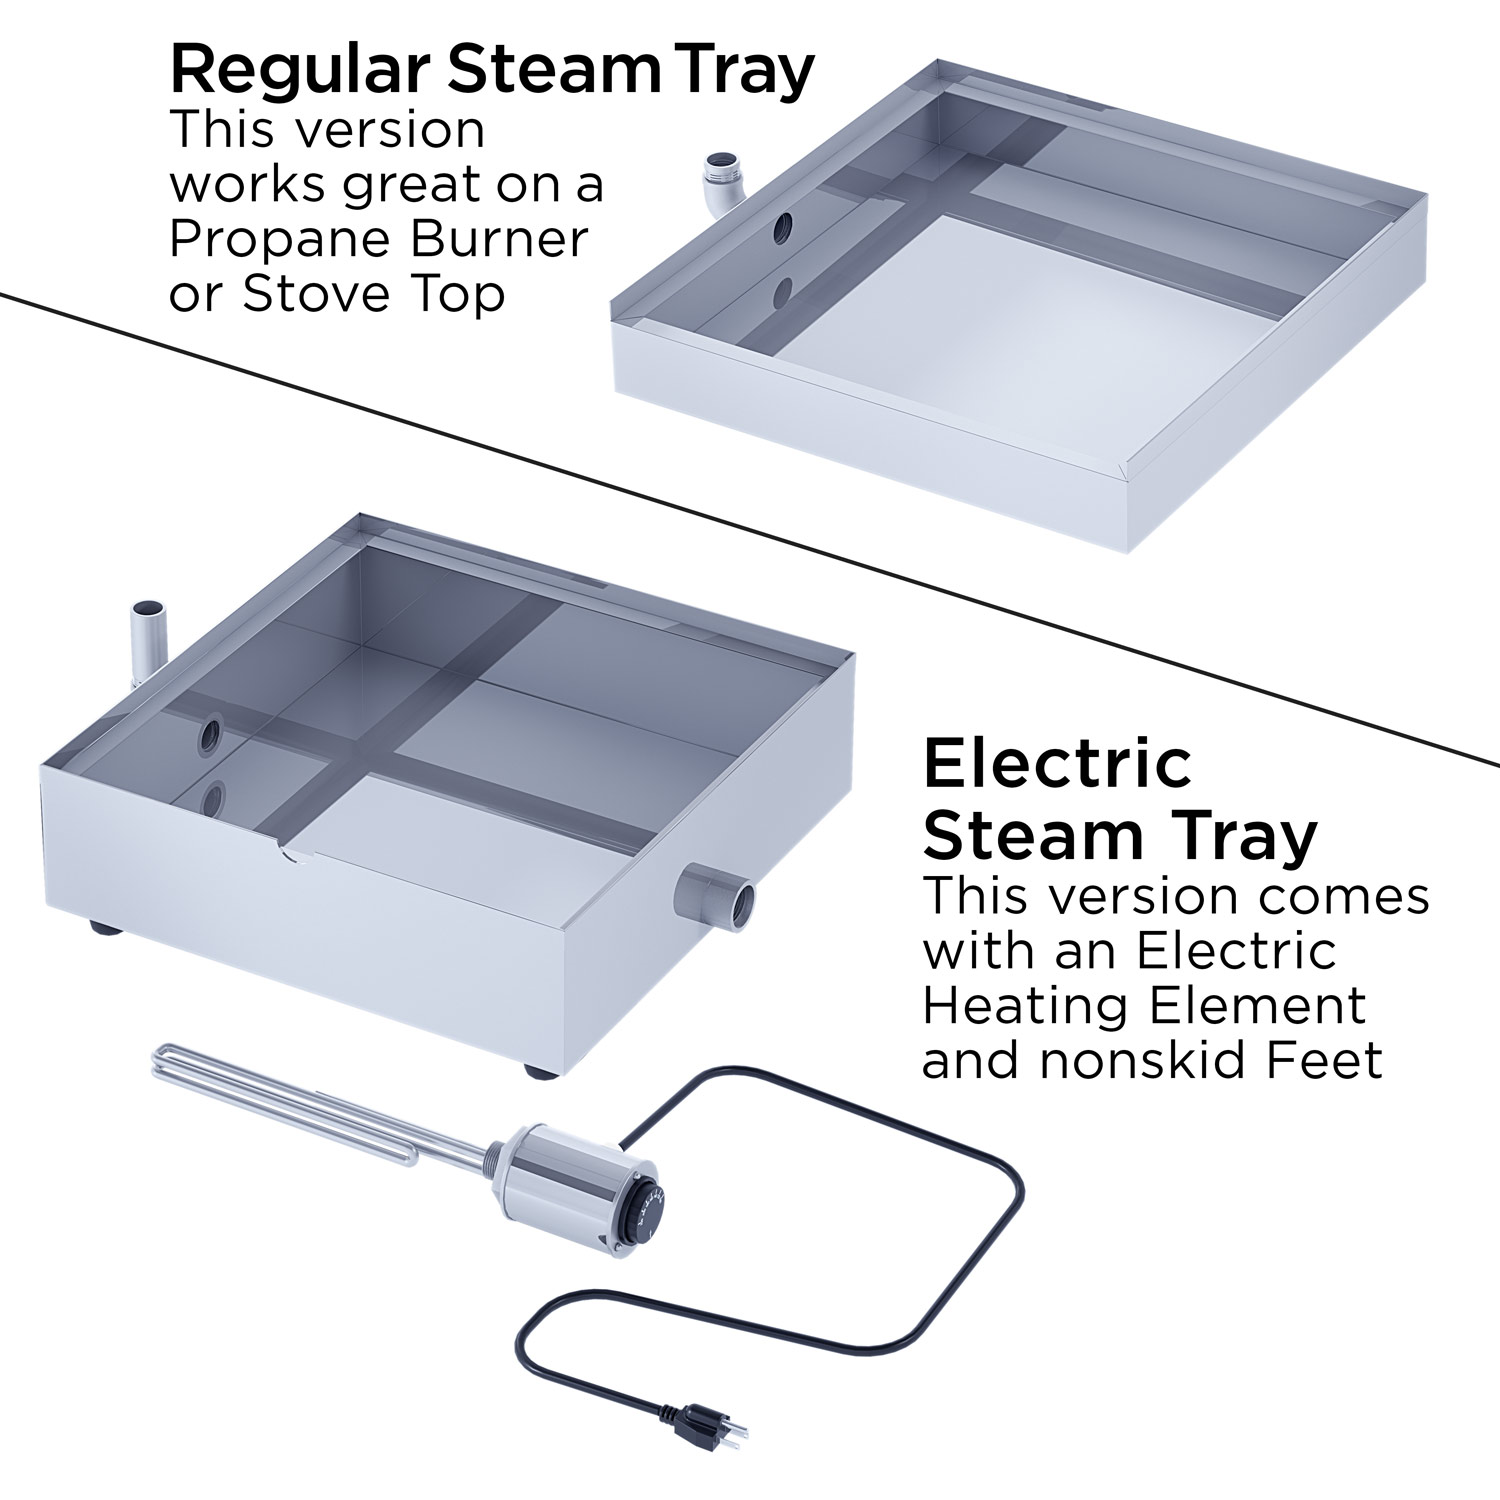 Steam Tray Options